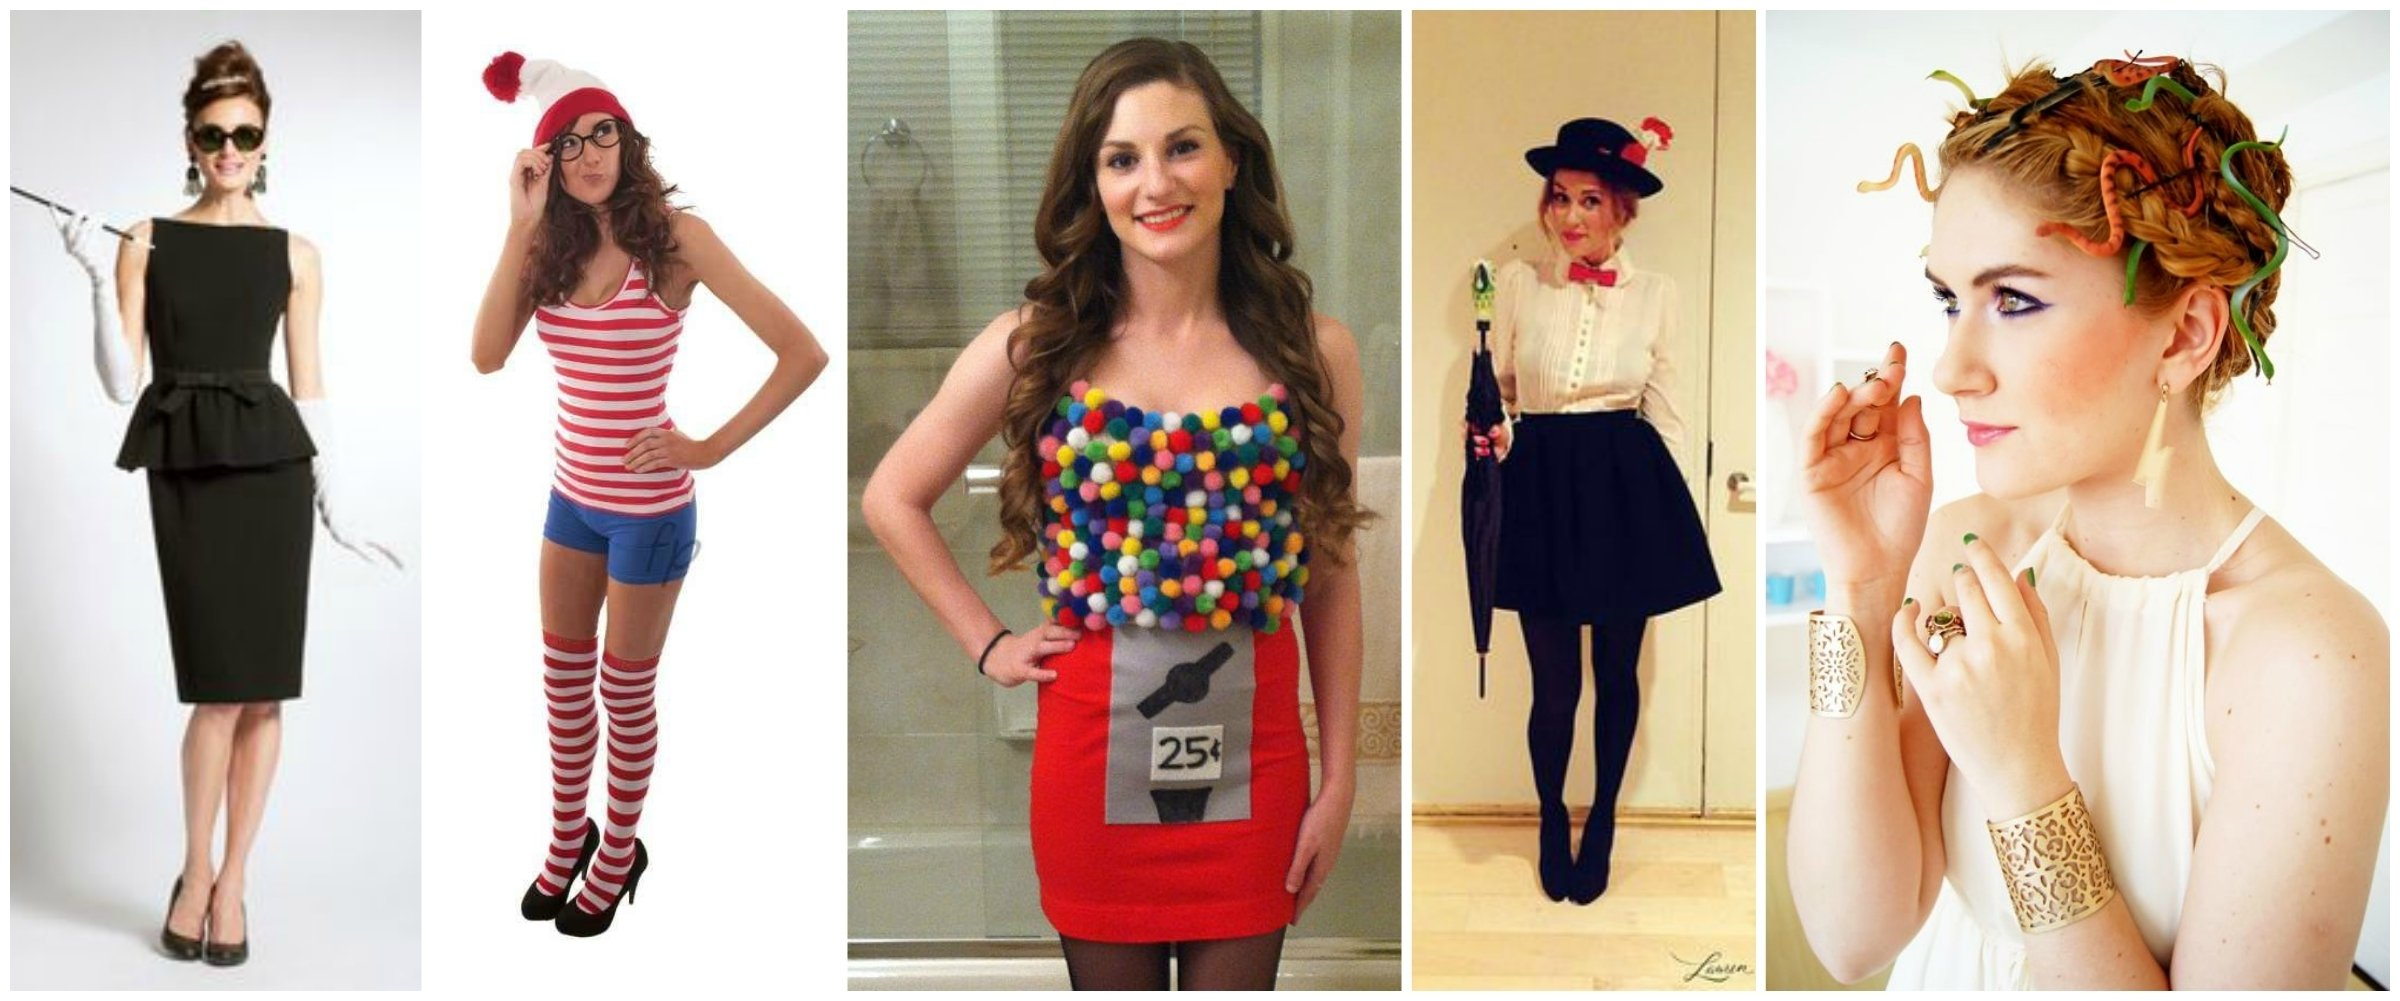 10 Ideal Cool Costume Ideas For Girls 61 costume ideas for best 10 group costumes ideas on pinterest work 2